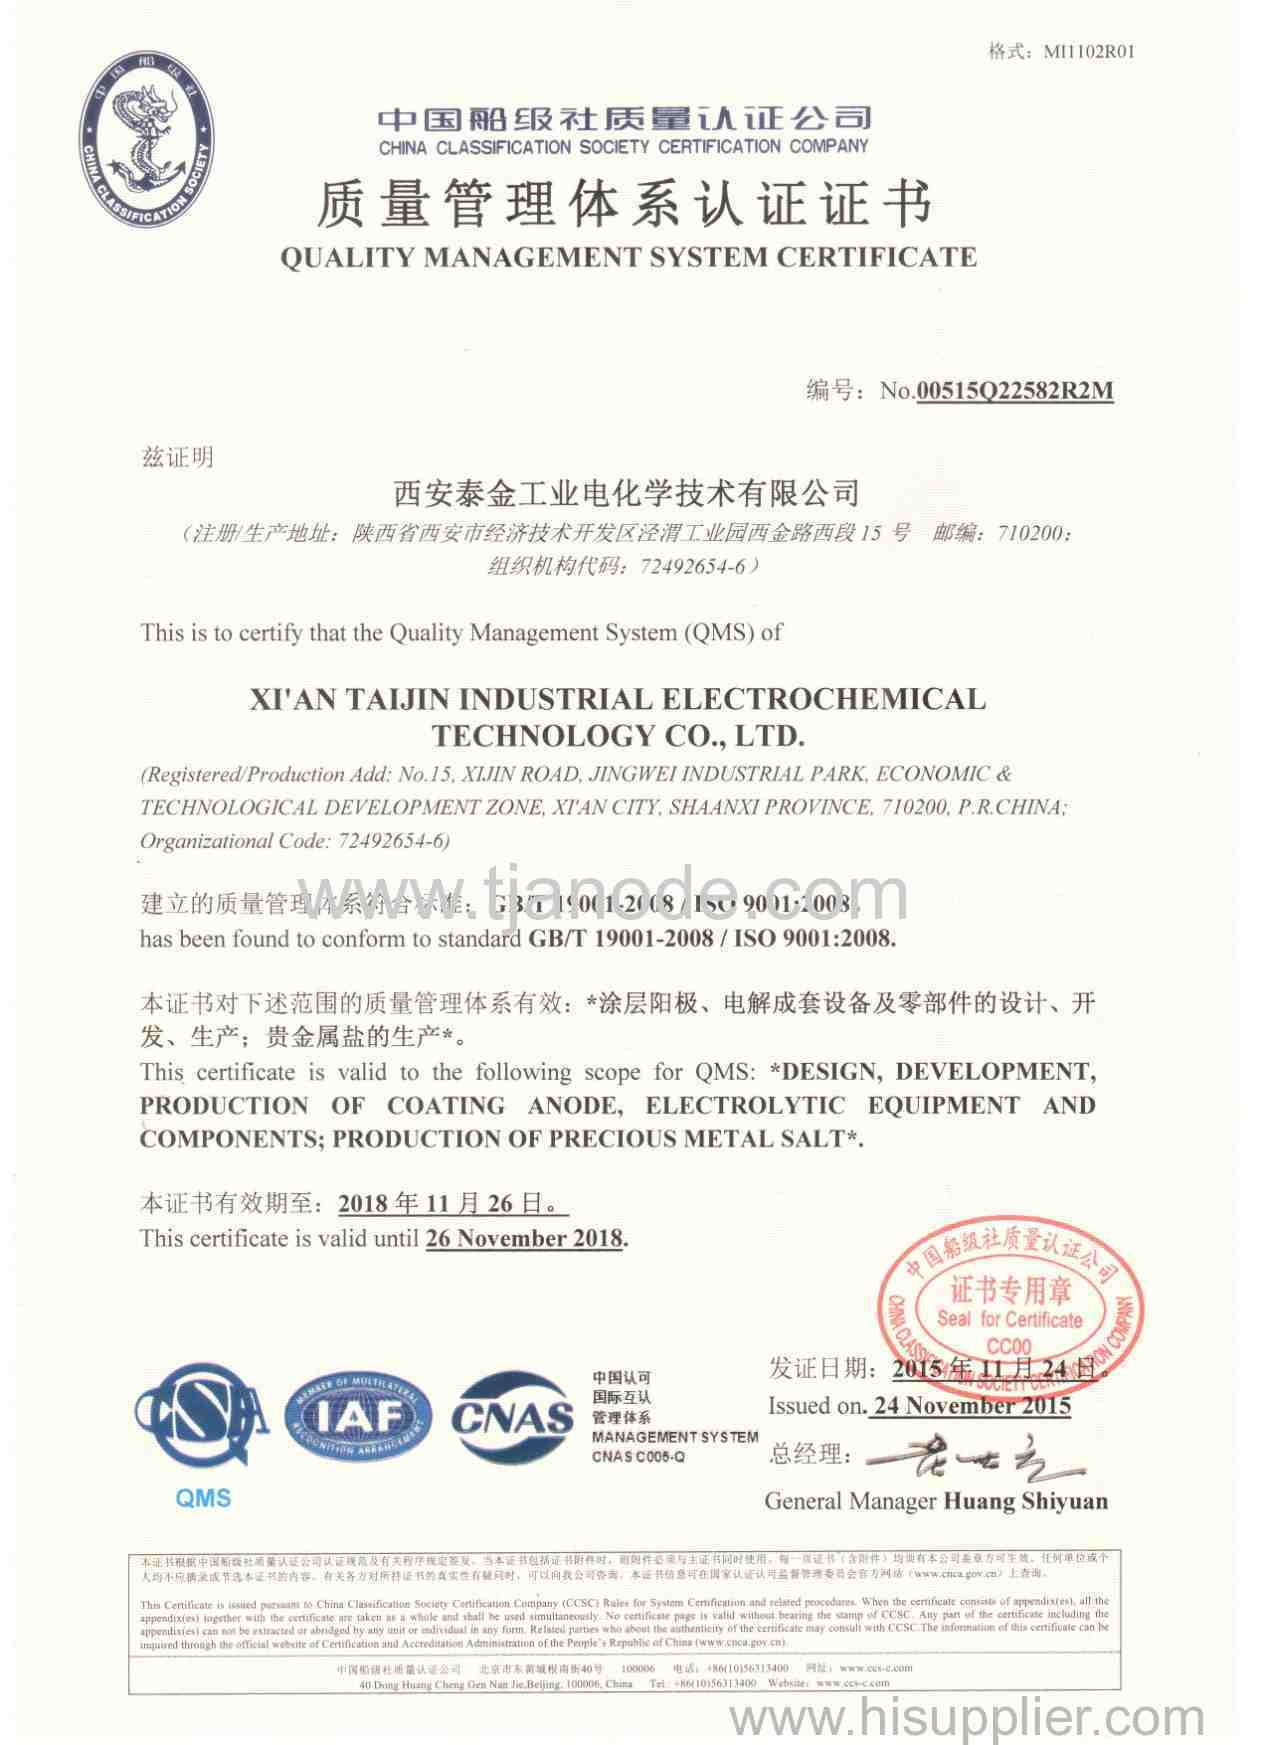 The 3rd Party Quality Test Certificate of MMO Ribbon